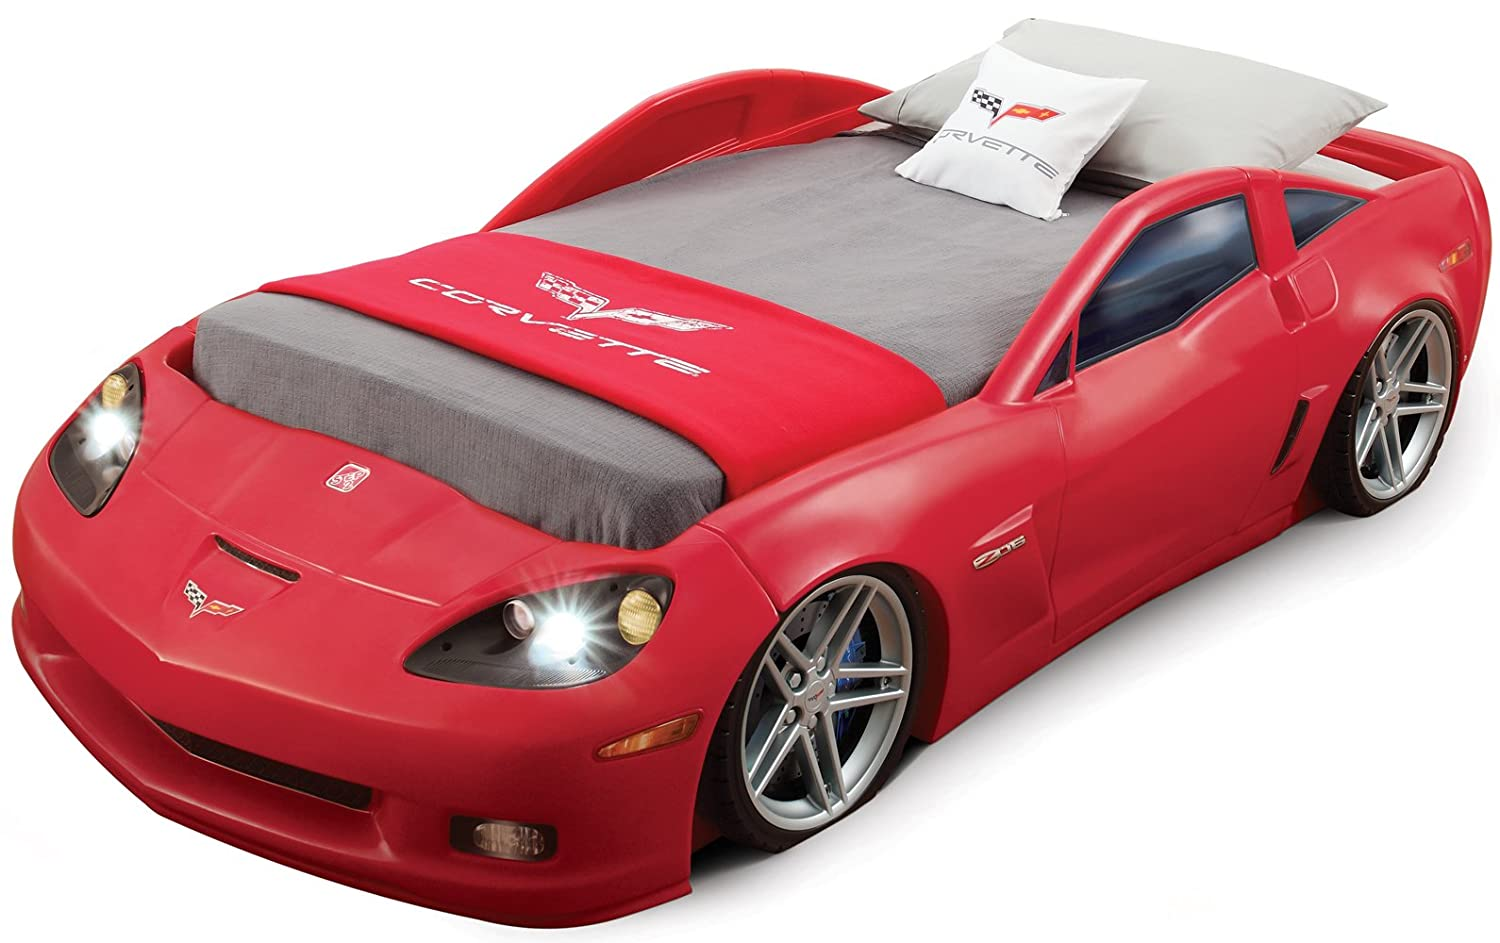 Race car beds for adults - Amazon Com Step2 Corvette Bed With Lights Red Silver Black Toys Games